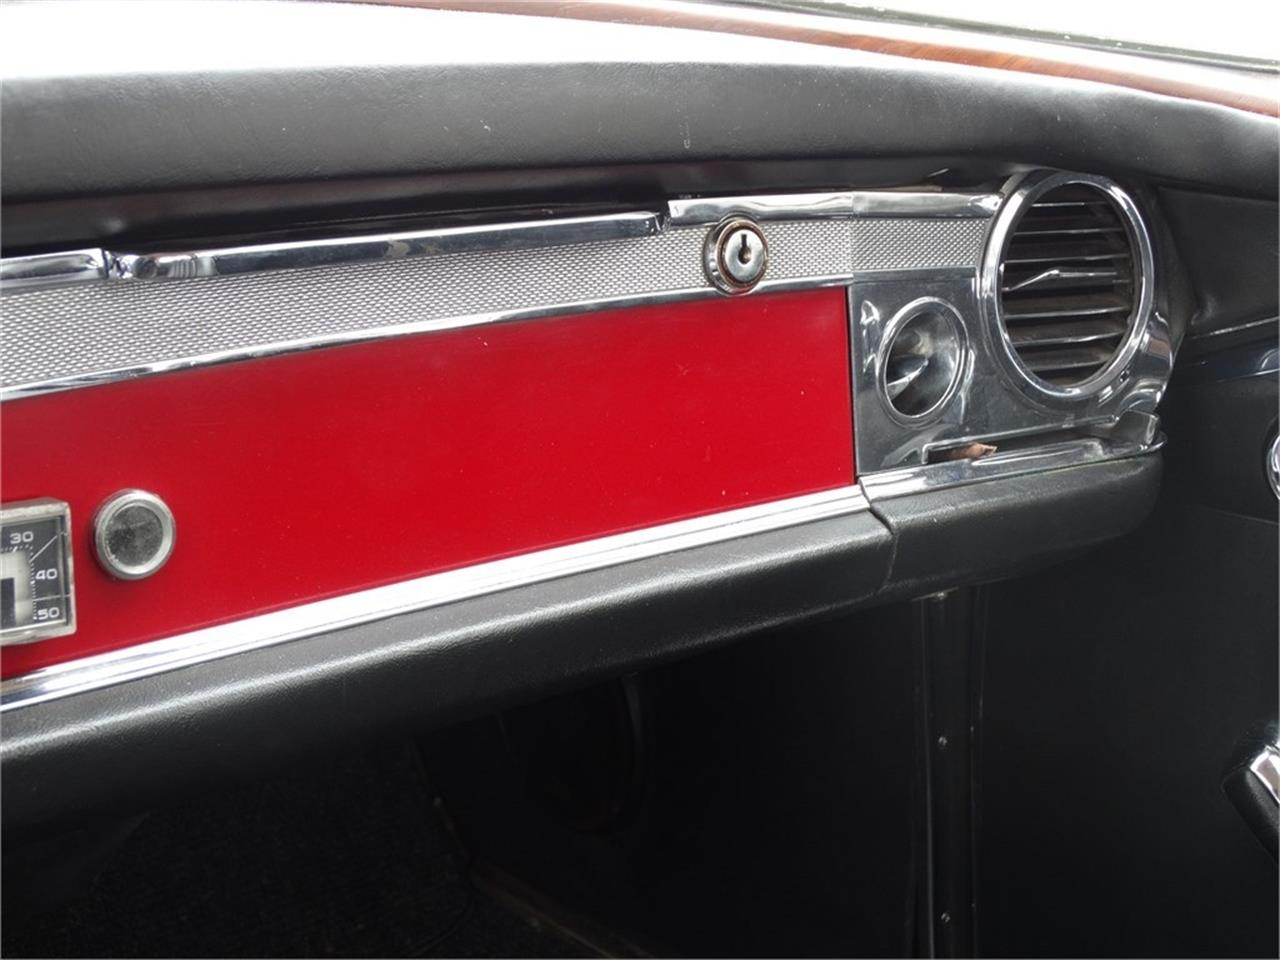 Large Picture of Classic '67 Mercedes-Benz SL-Class located in Ohio Auction Vehicle - QDTZ